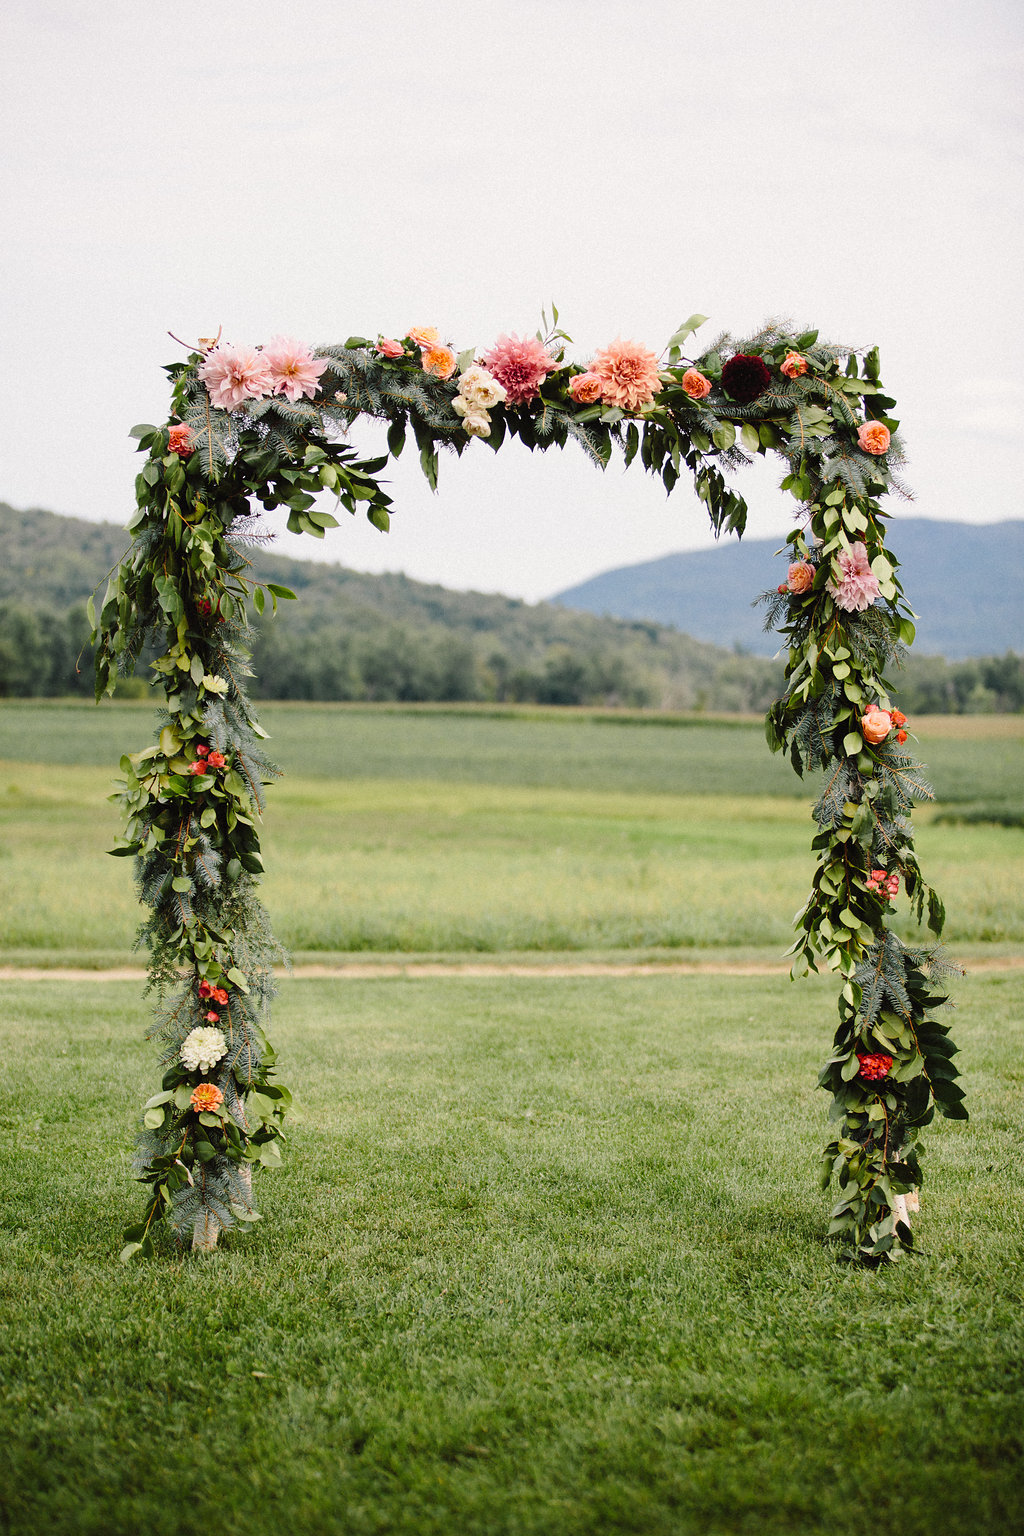 Ceremony flower arrangements by Nectar & Root | Wedding floral design services in Burlington, Vermont (VT) | Arch with coral dahlias, blush garden roses, spray roses